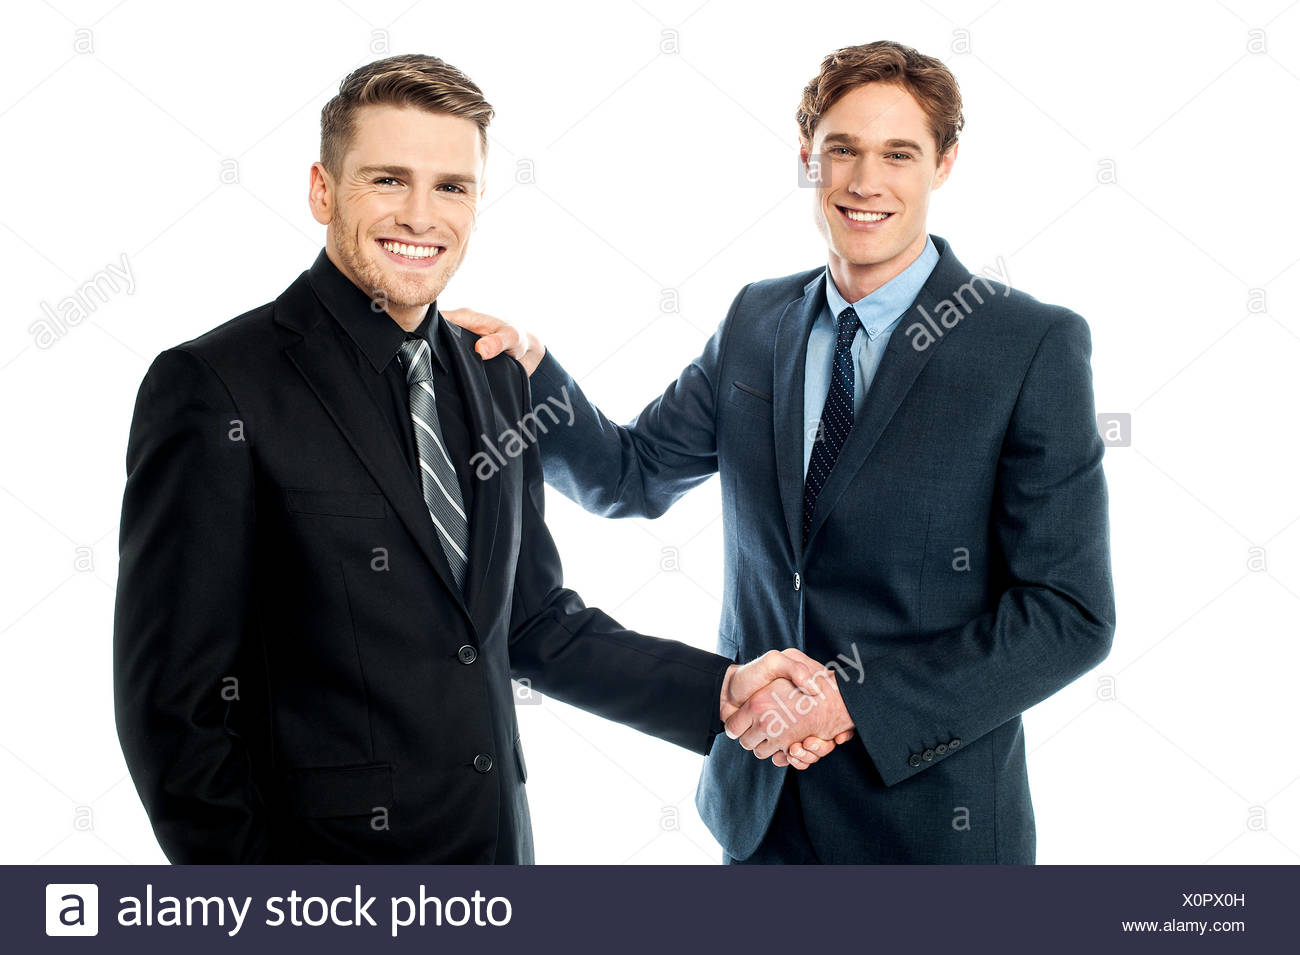 The deal has been finalized. - Stock Image